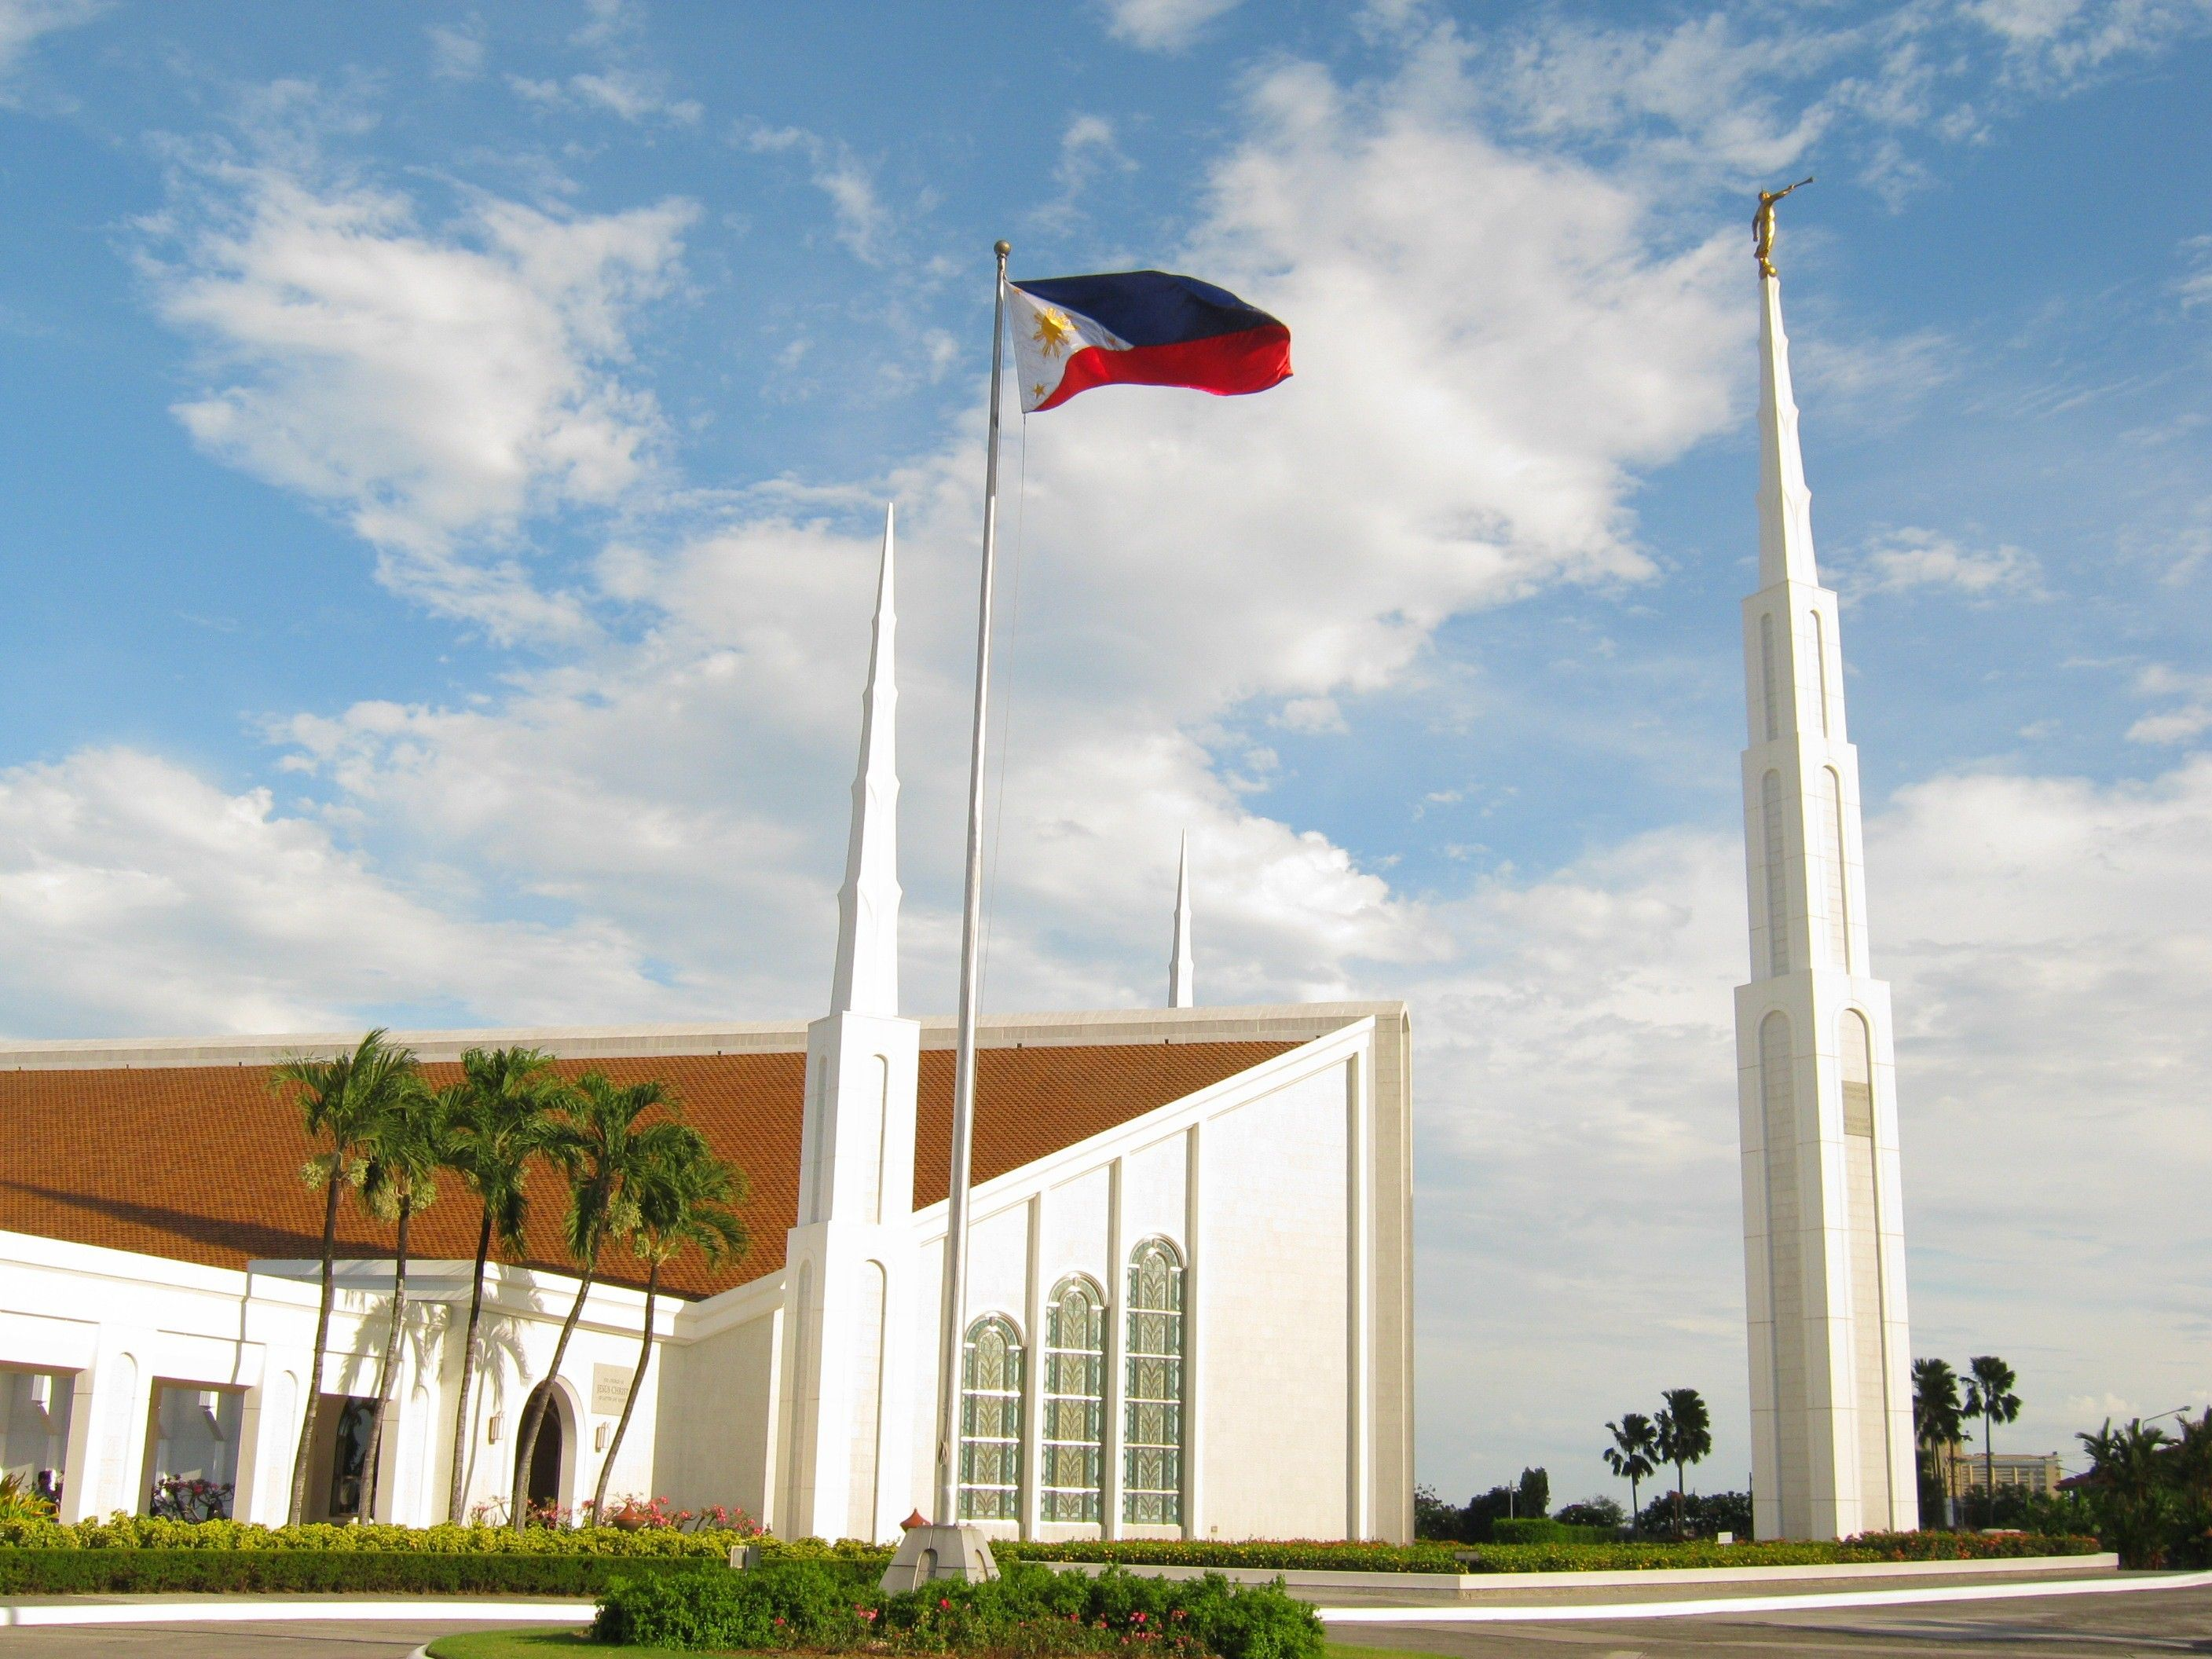 The Manila Philippines Temple, including the entrance and spires.